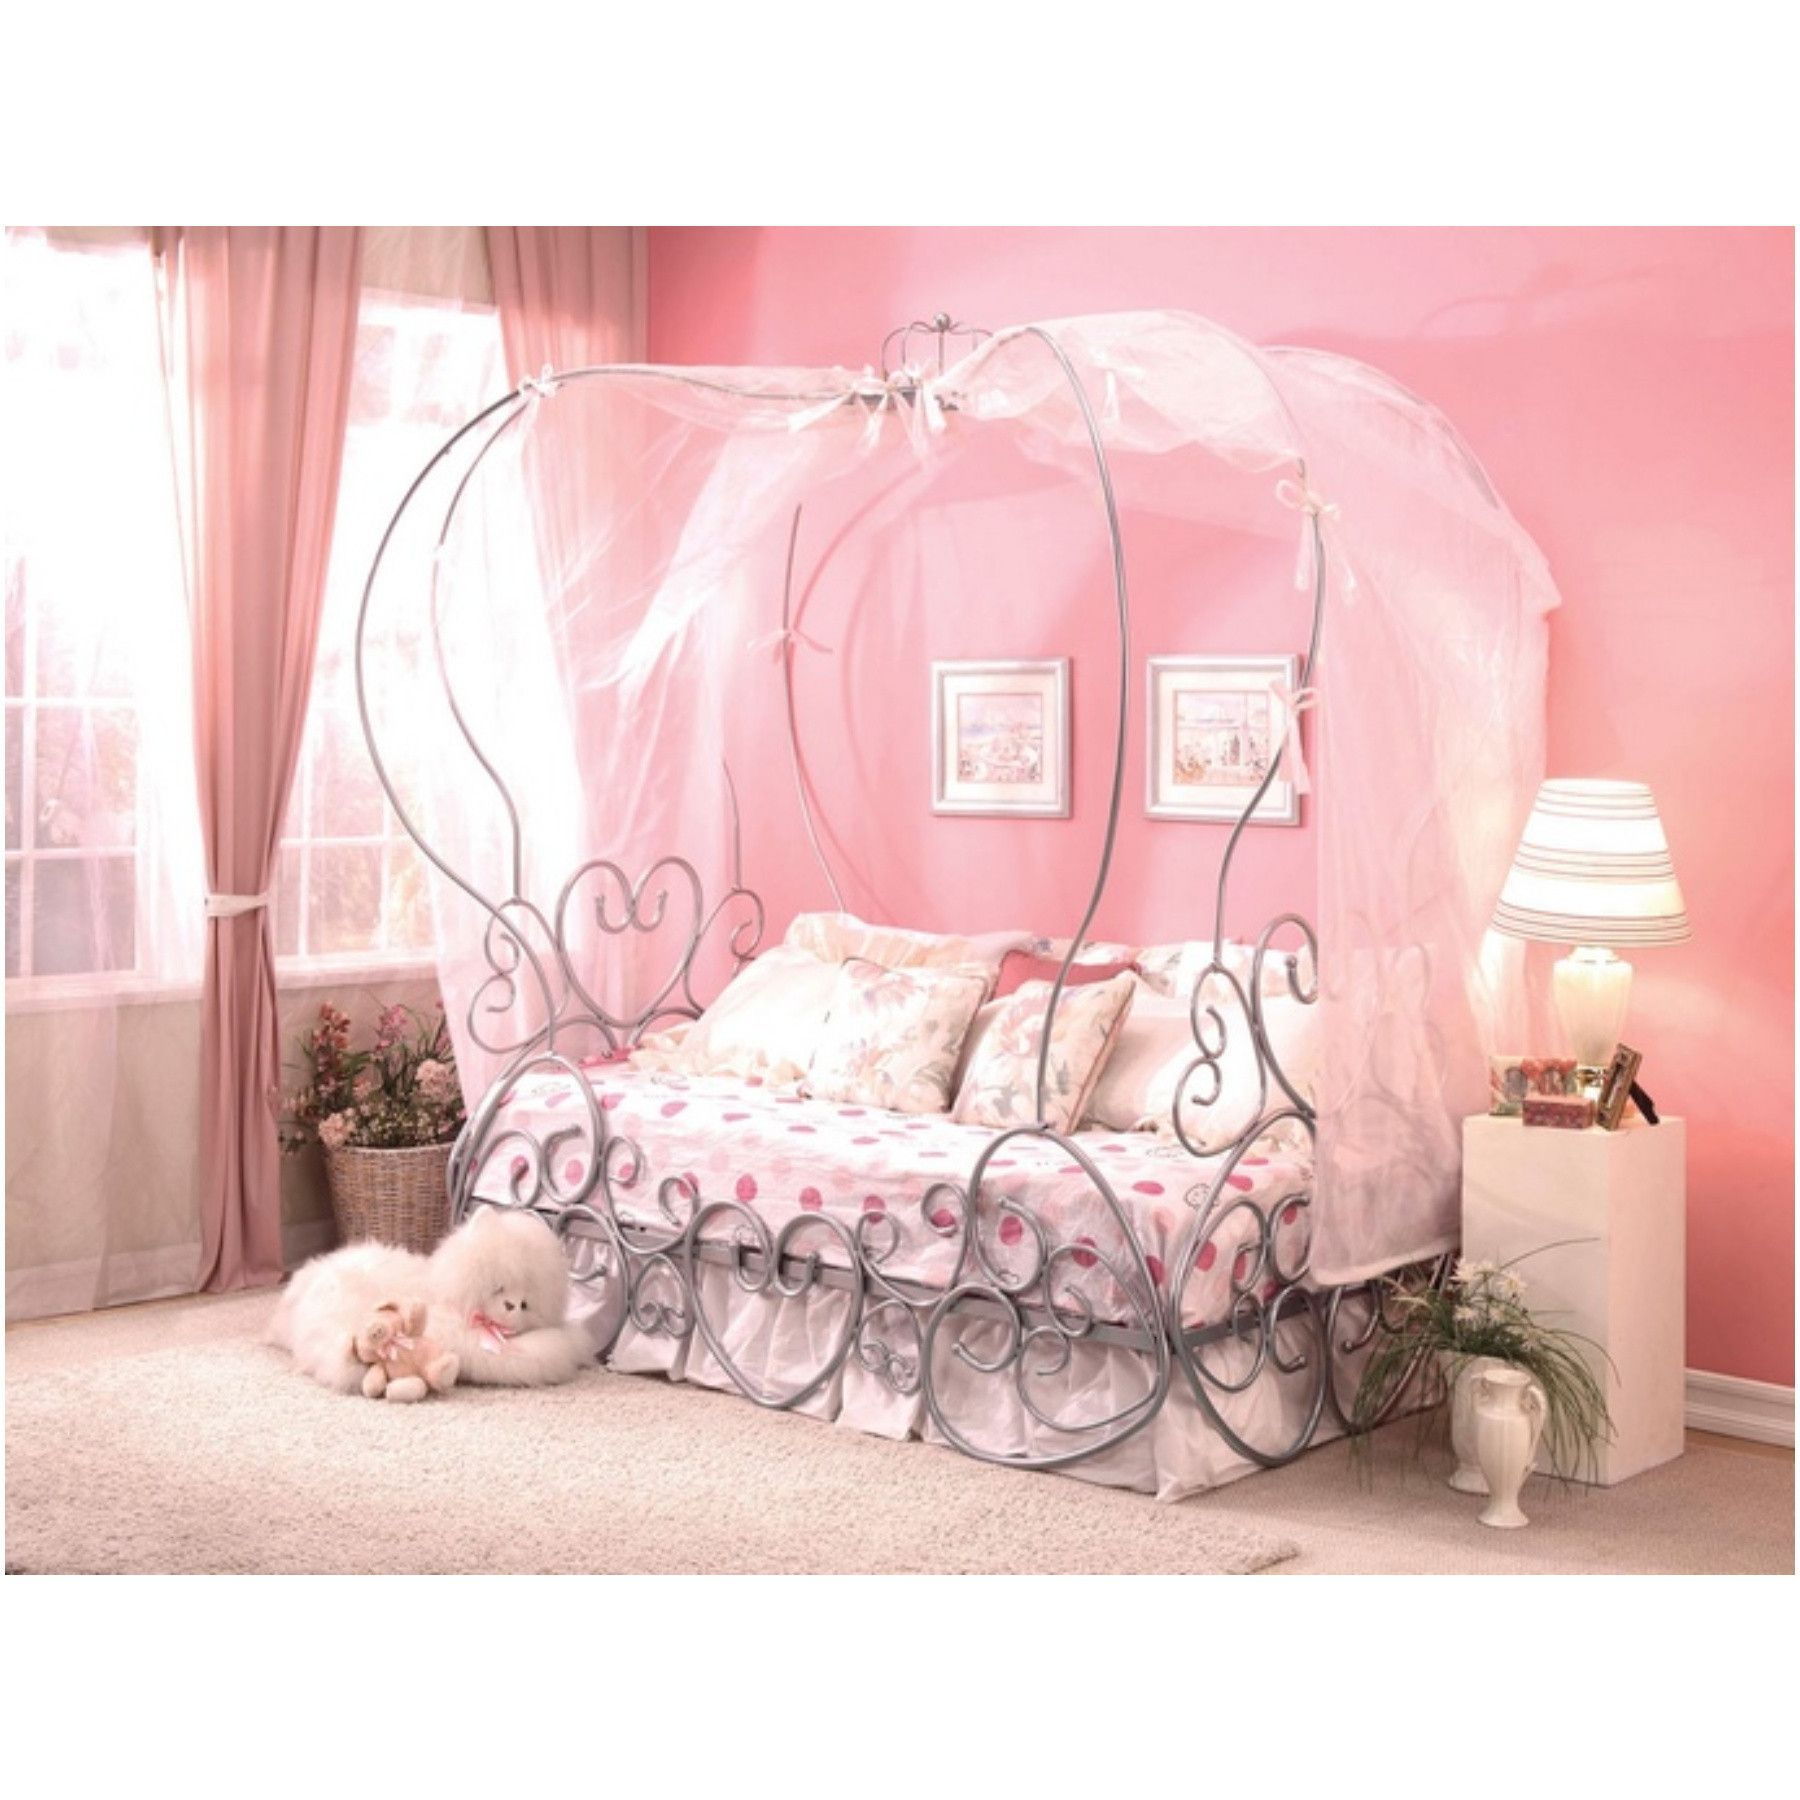 Cinderella Canopy Bed Princess canopy bed, Twin canopy